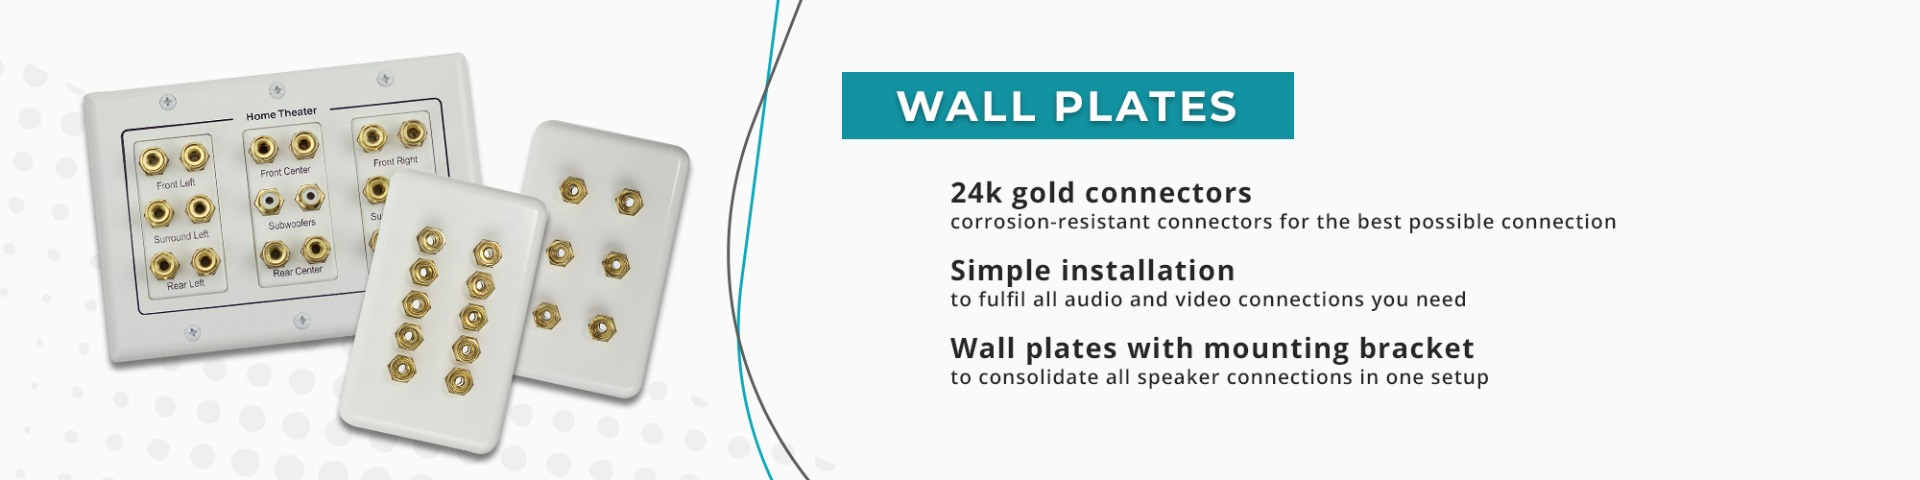 home theater av wall plates, speaker wall plate